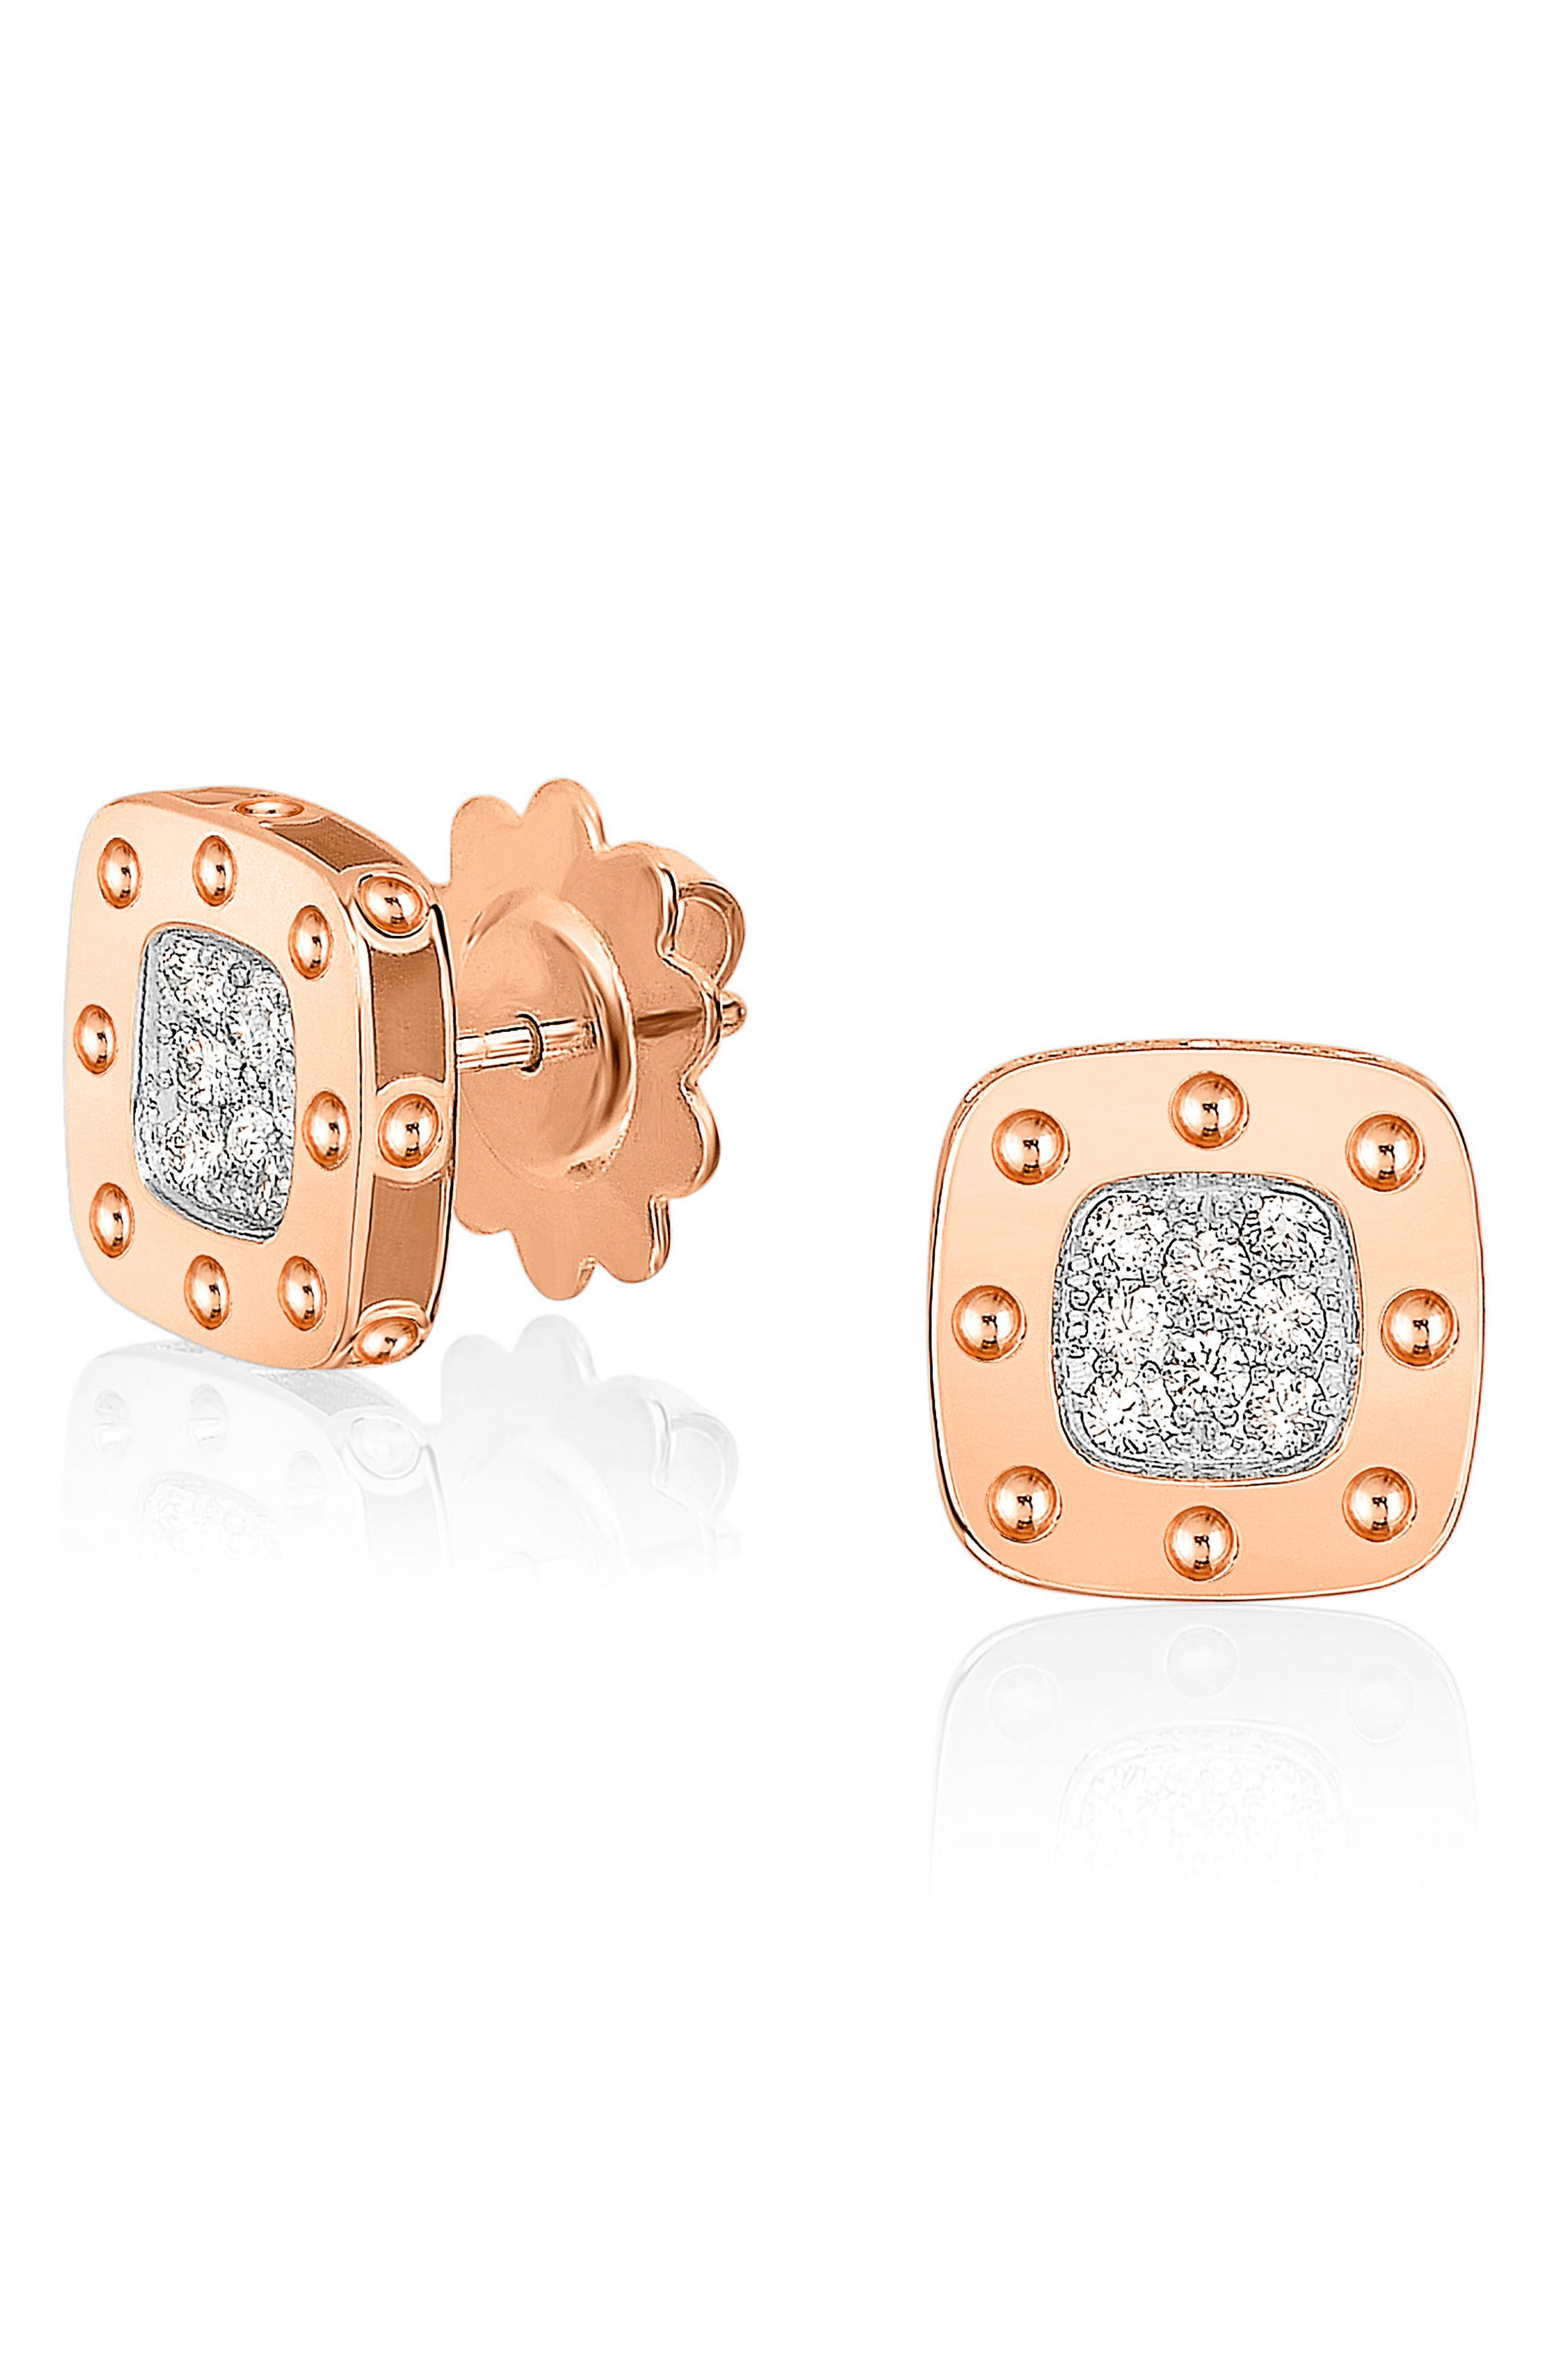 ROBERTO COIN 'Pois Moi' Diamond Stud Earrings